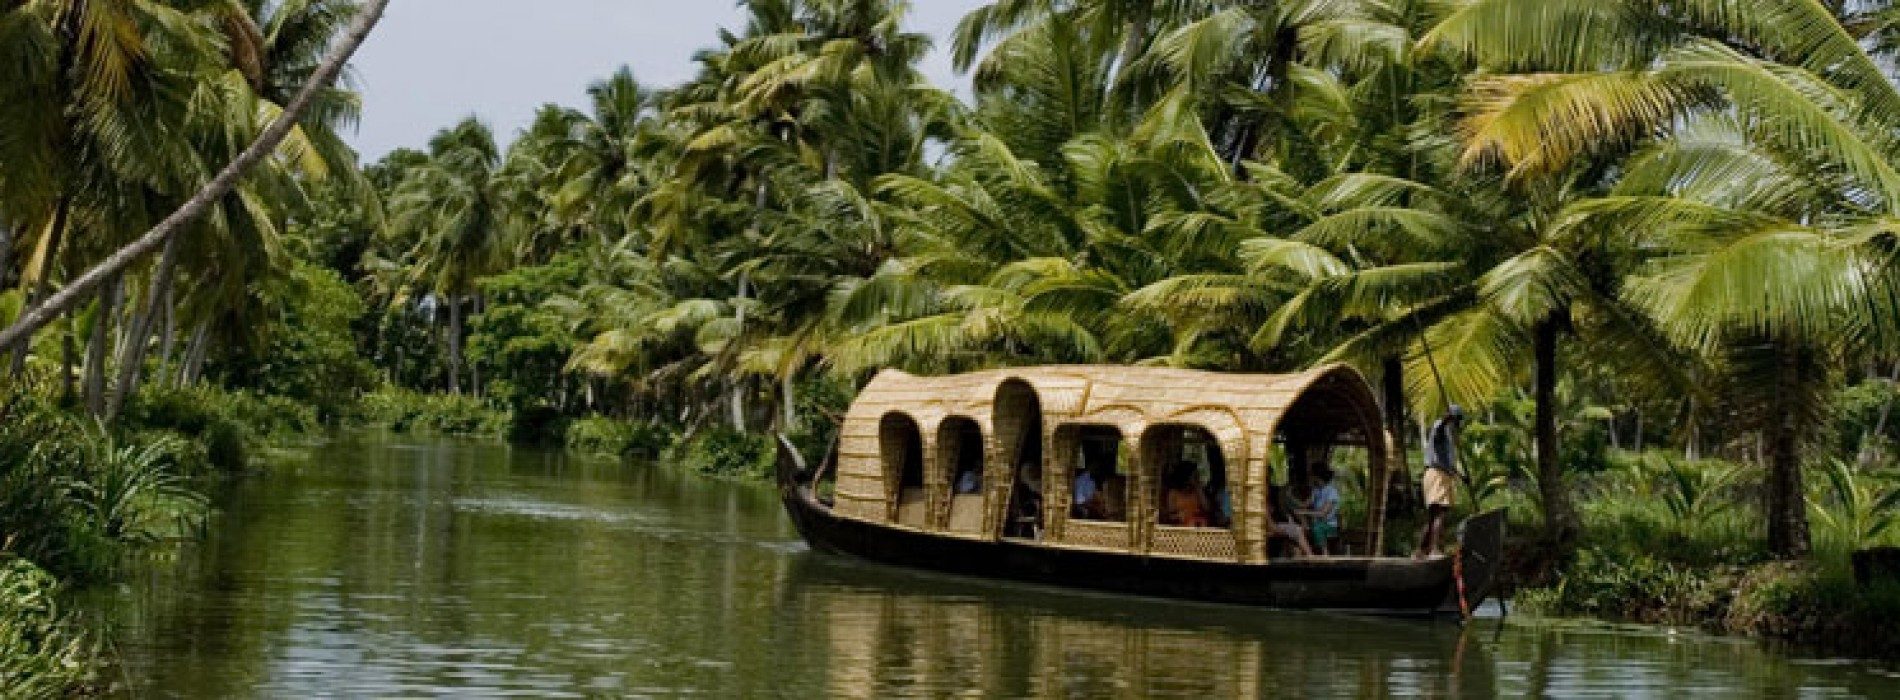 Top Destinations to Spend Winter Holidays in India